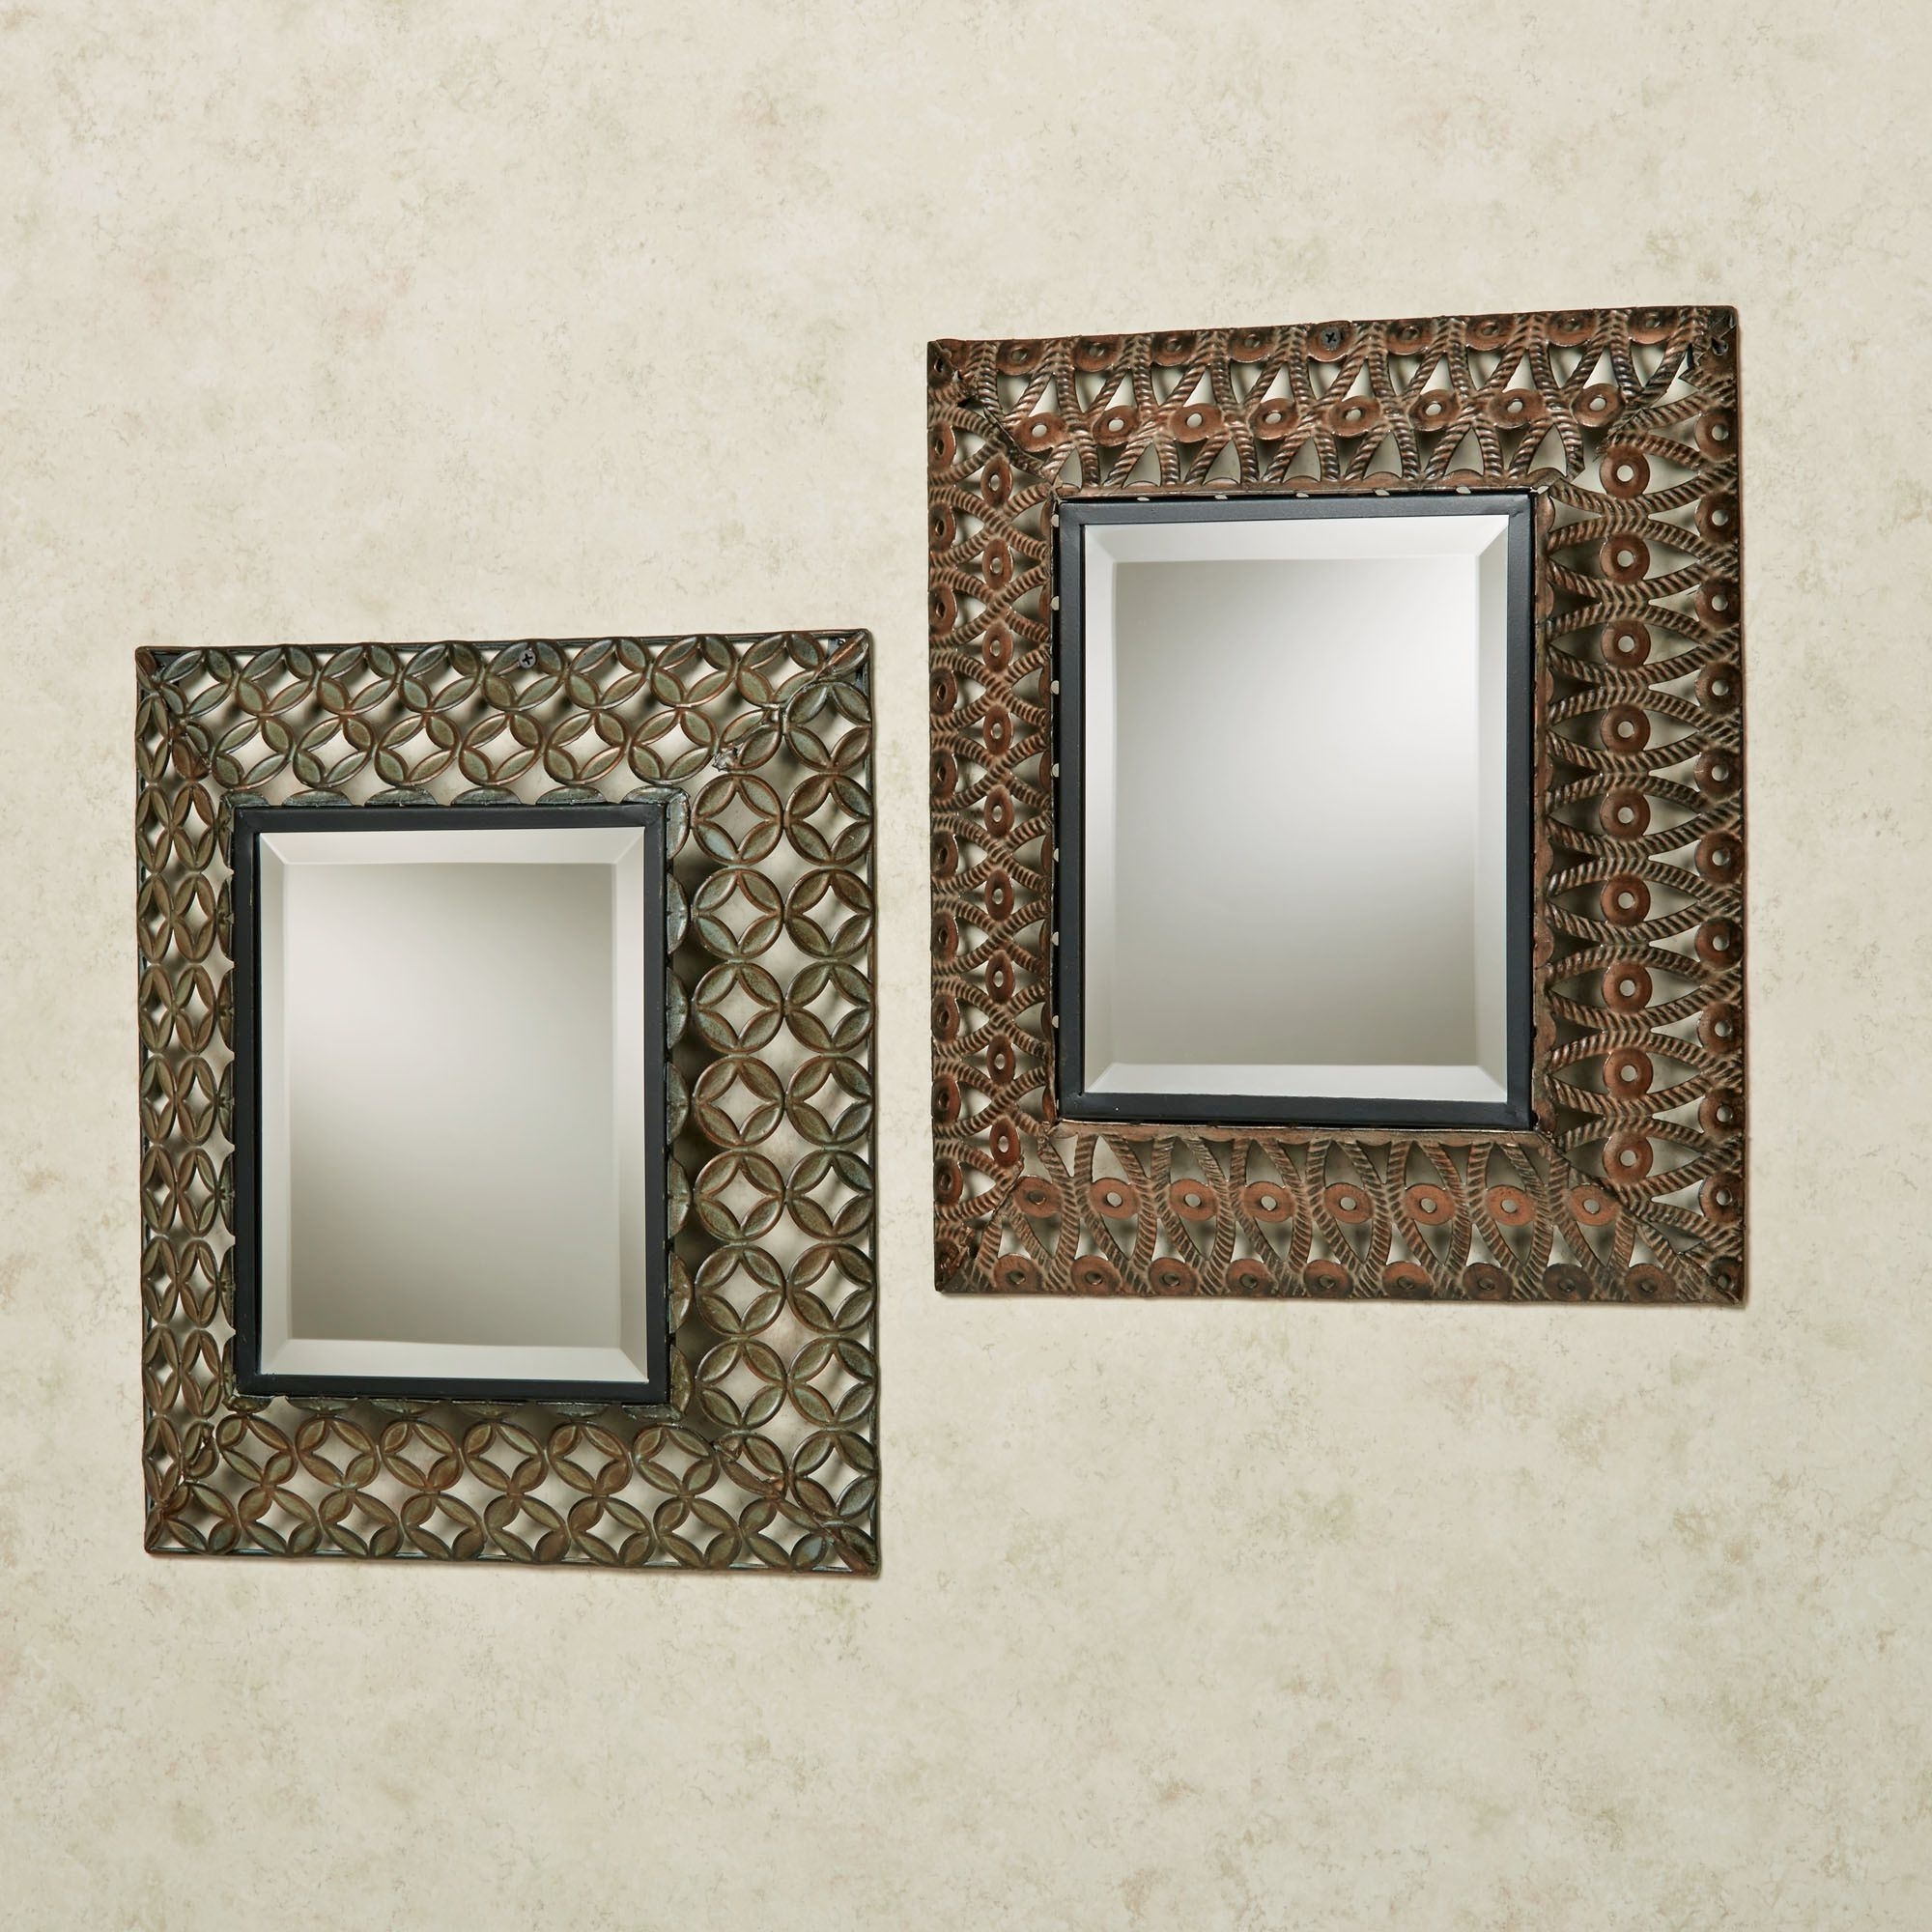 Cheap Decorative Wall Mirror Vintage Mirror Sets Wall Decor – Wall Regarding Latest Mirror Sets Wall Accents (View 4 of 15)